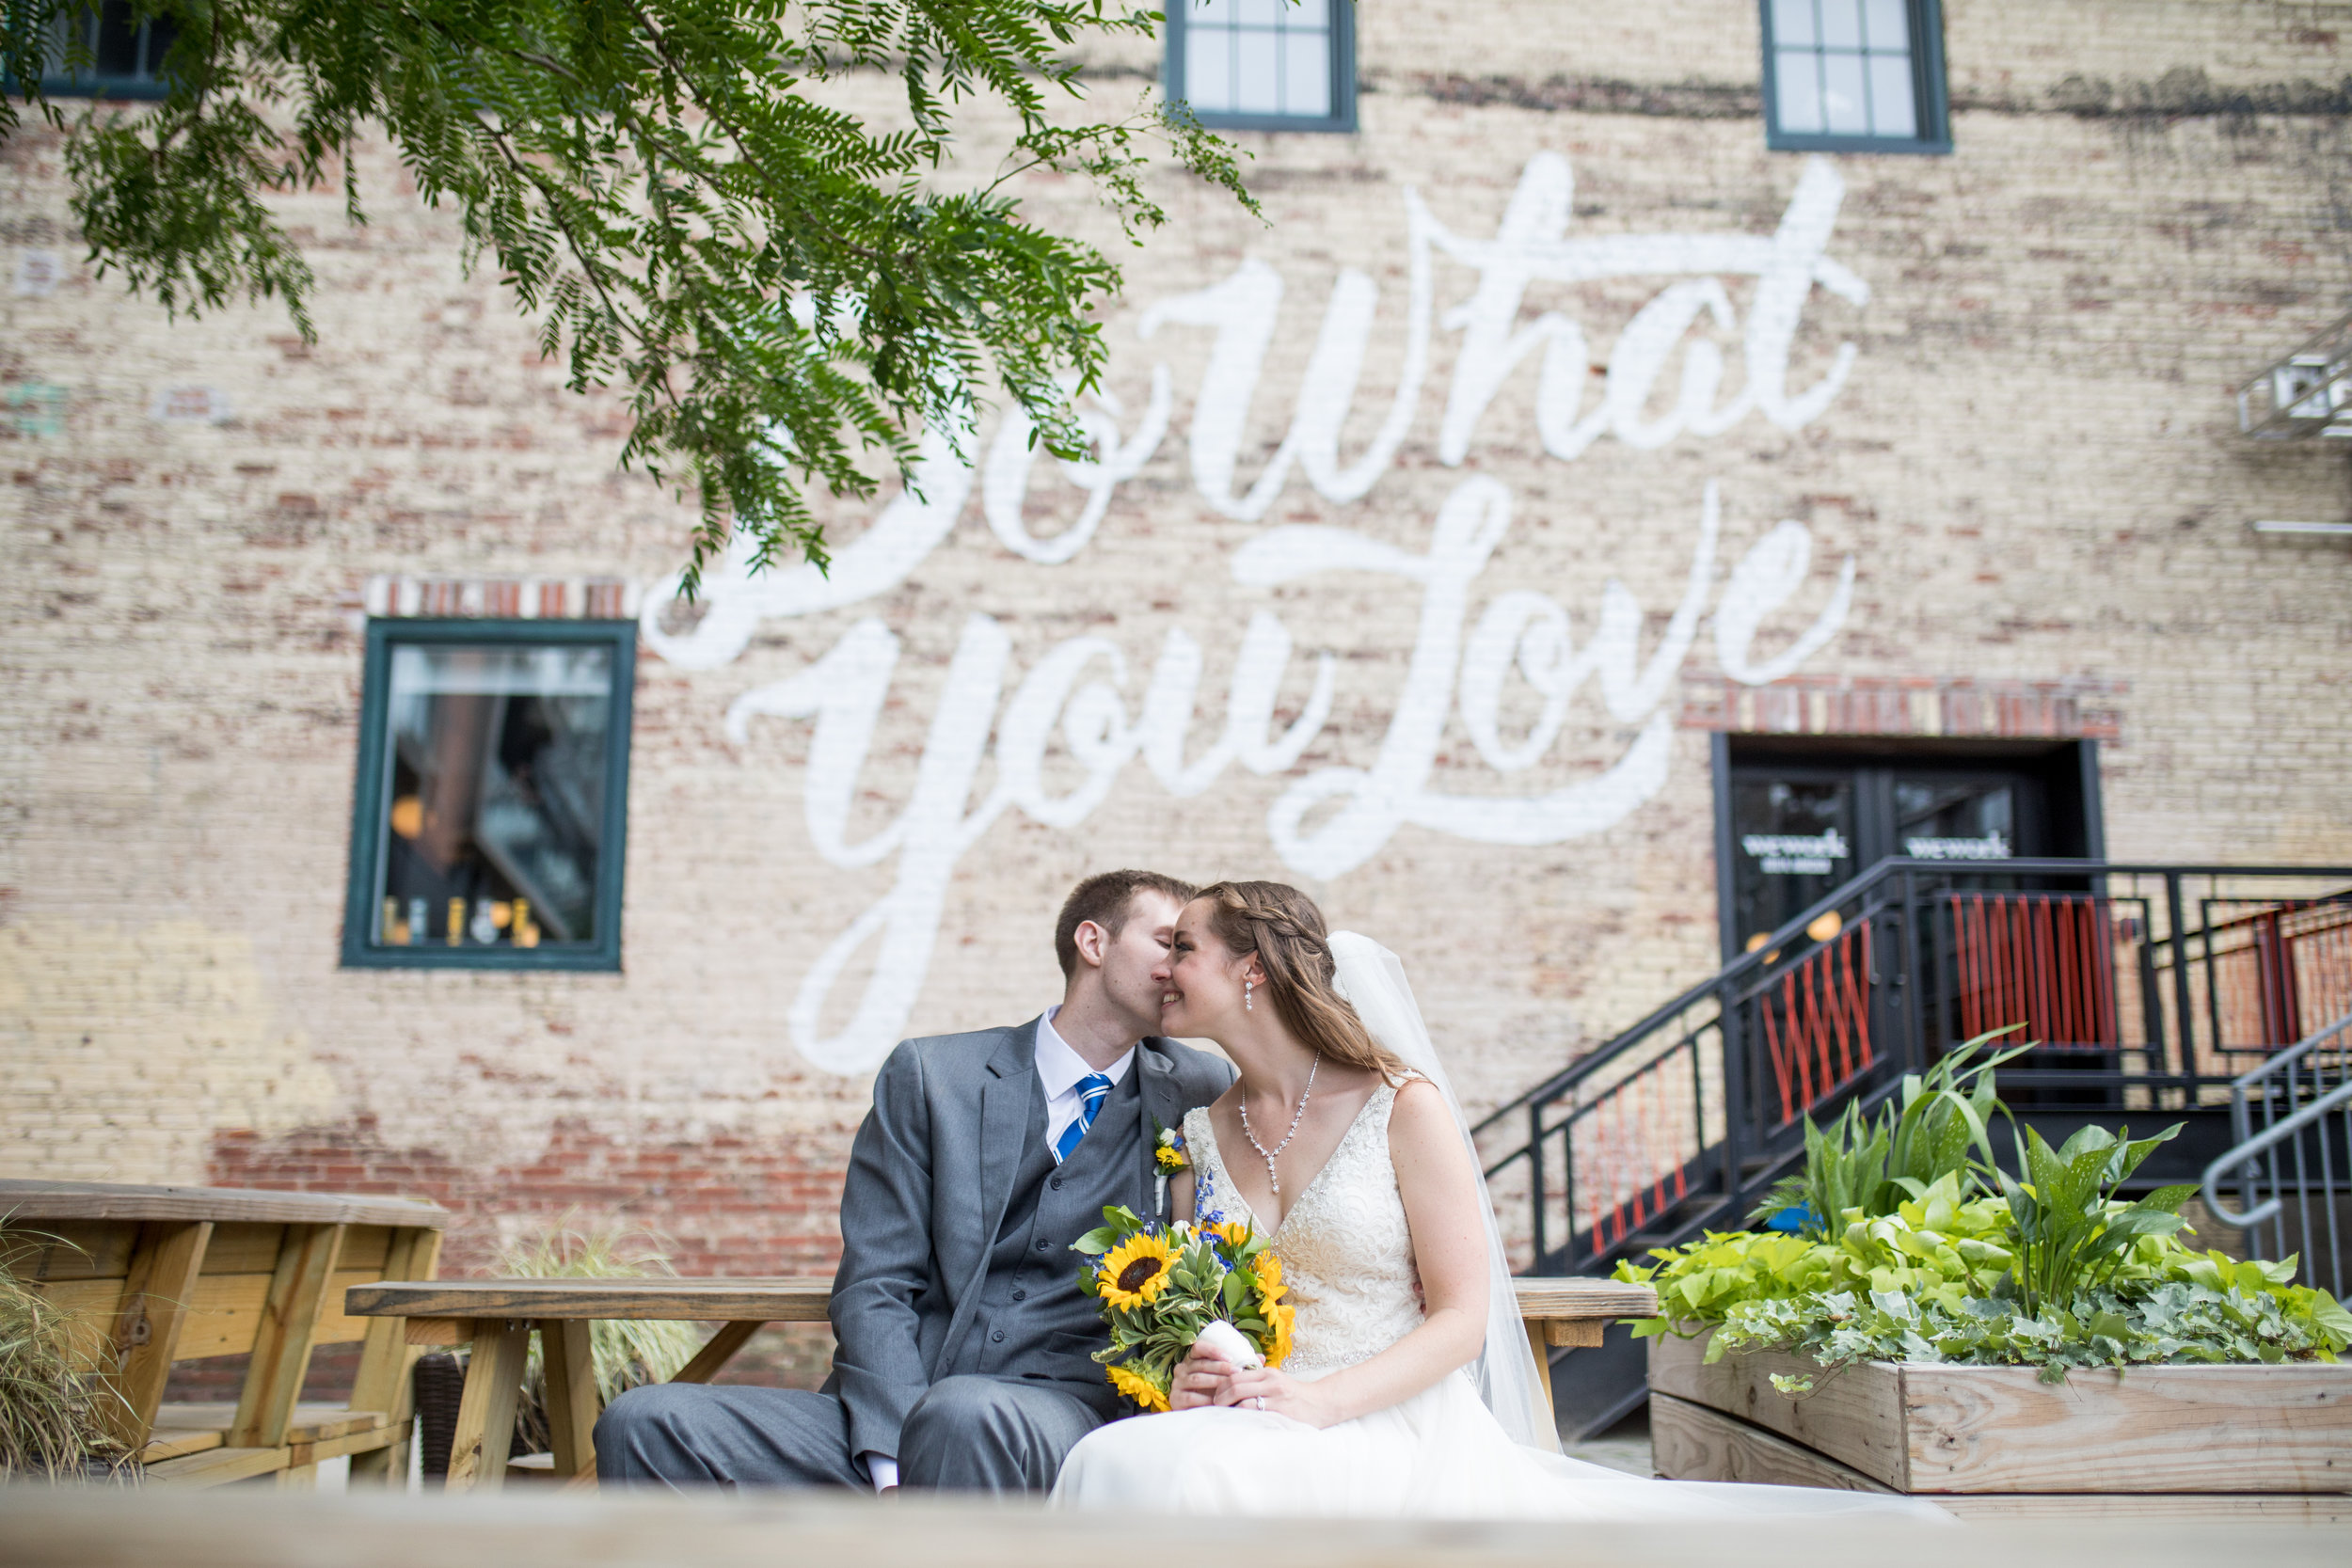 Clayton and Colleen cuddle up in the Piazza before heading into their wedding reception at Tendenza in Philadelphia.